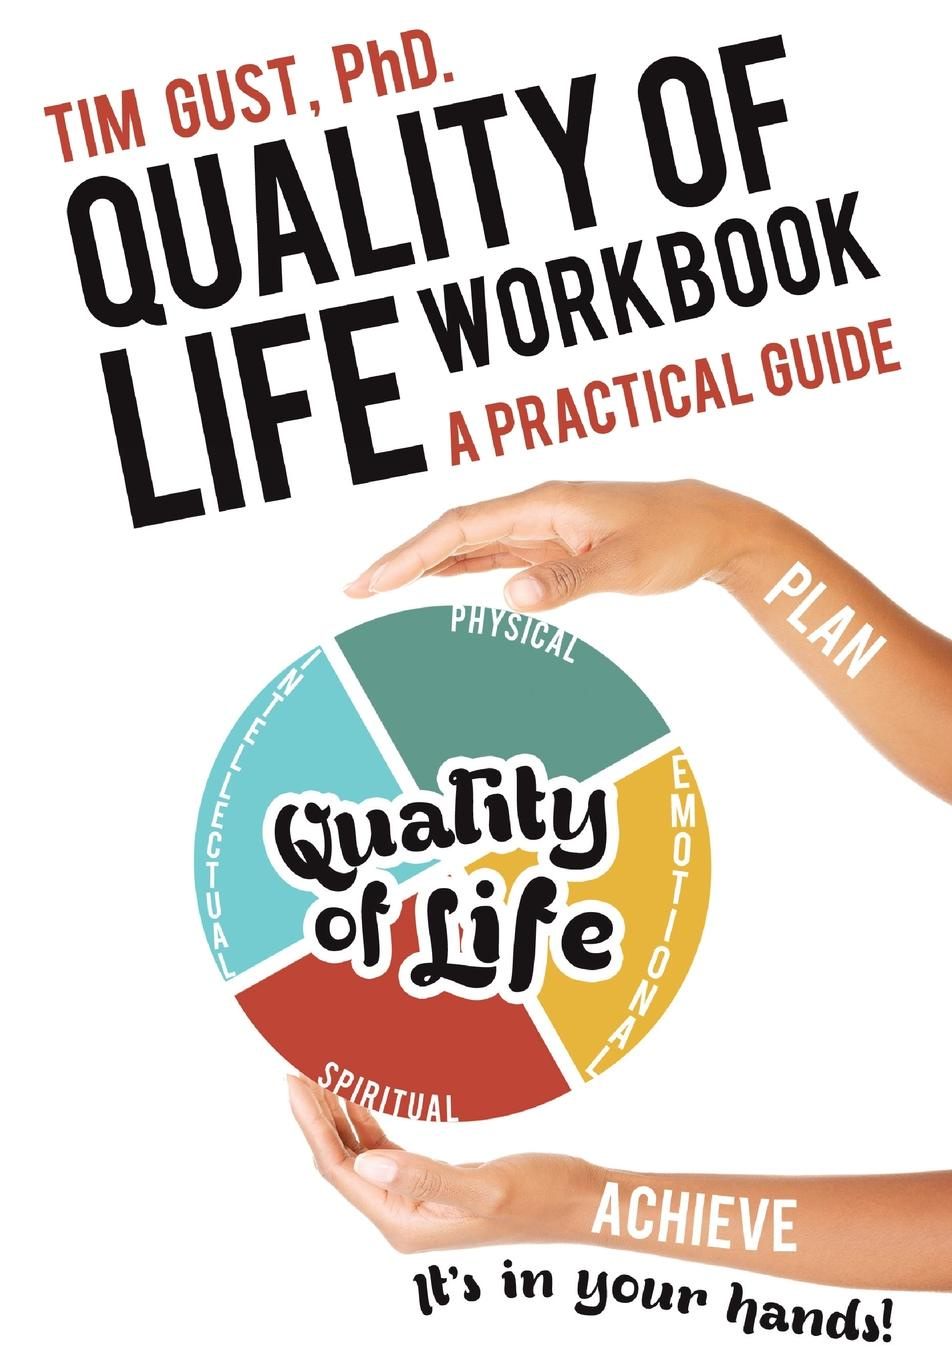 Tim Gust PhD. Quality of Life Workbook A Practical Guide levels of life